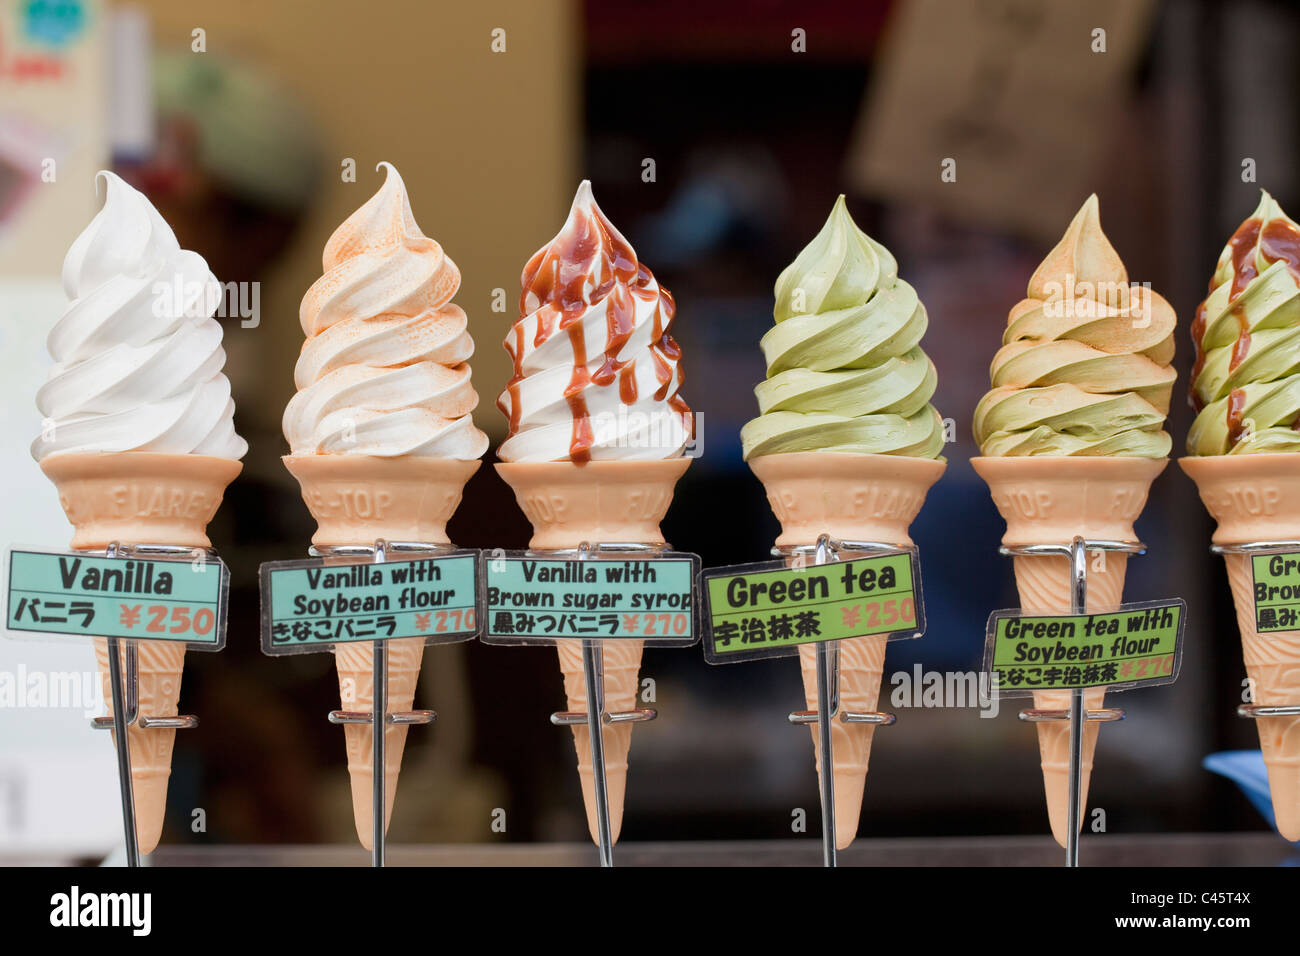 Plastic ice cream cones on display in  shop, Kyoto, Japan. Stock Photo